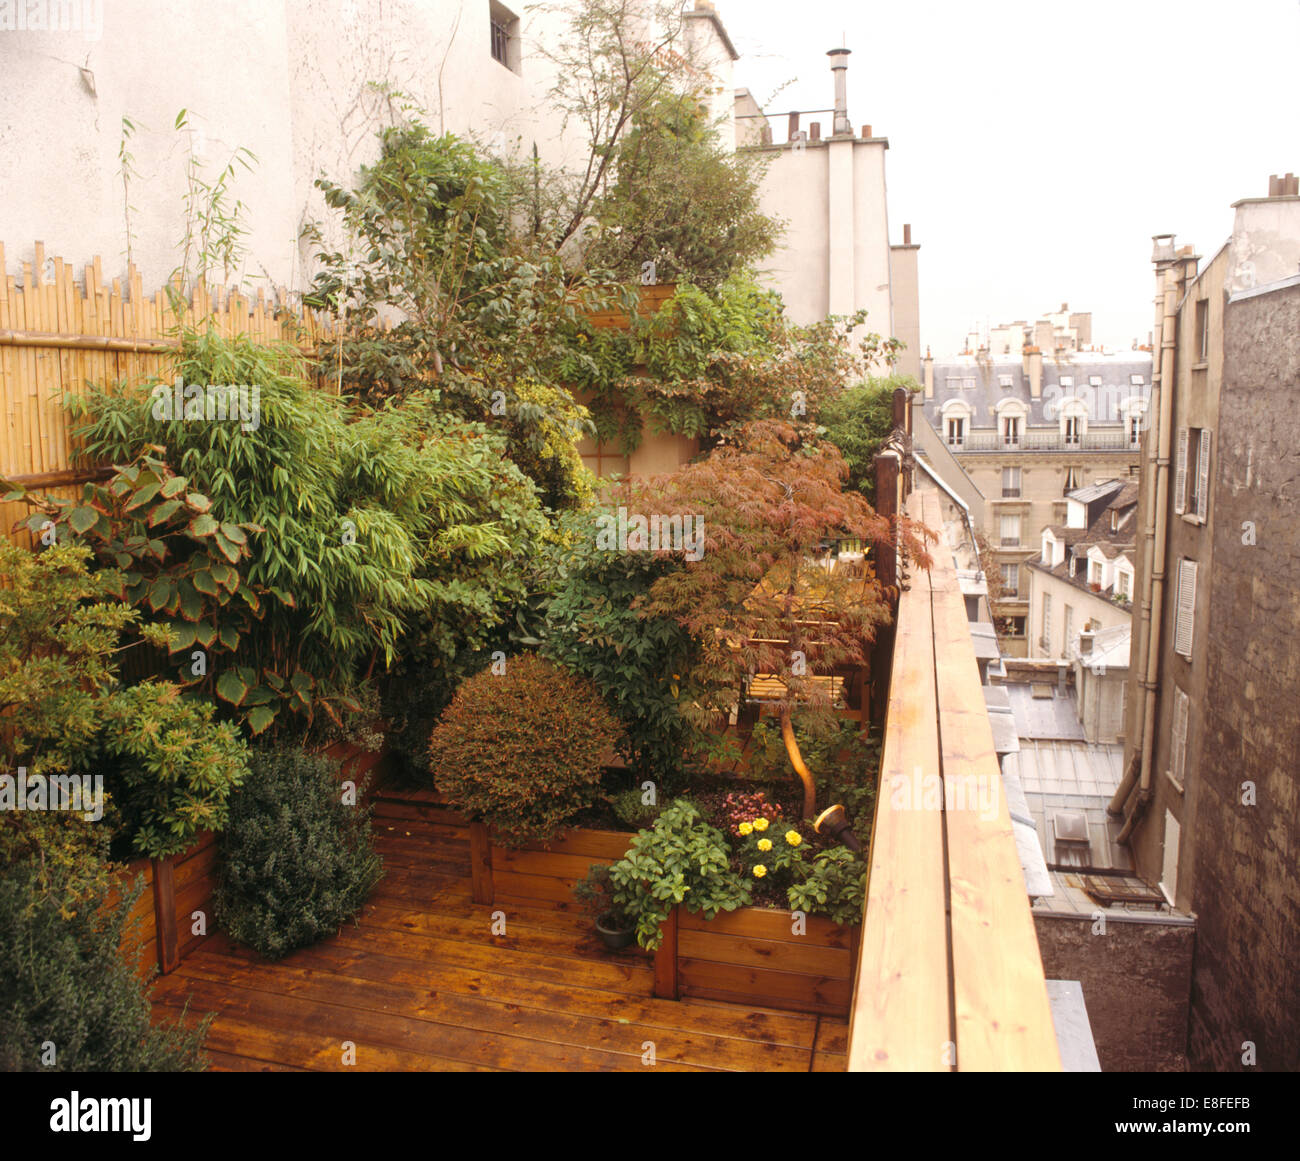 Lush Green Shrubs And Small Trees In Planters In Narrow Paris Roof Garden  With Wooden Decking